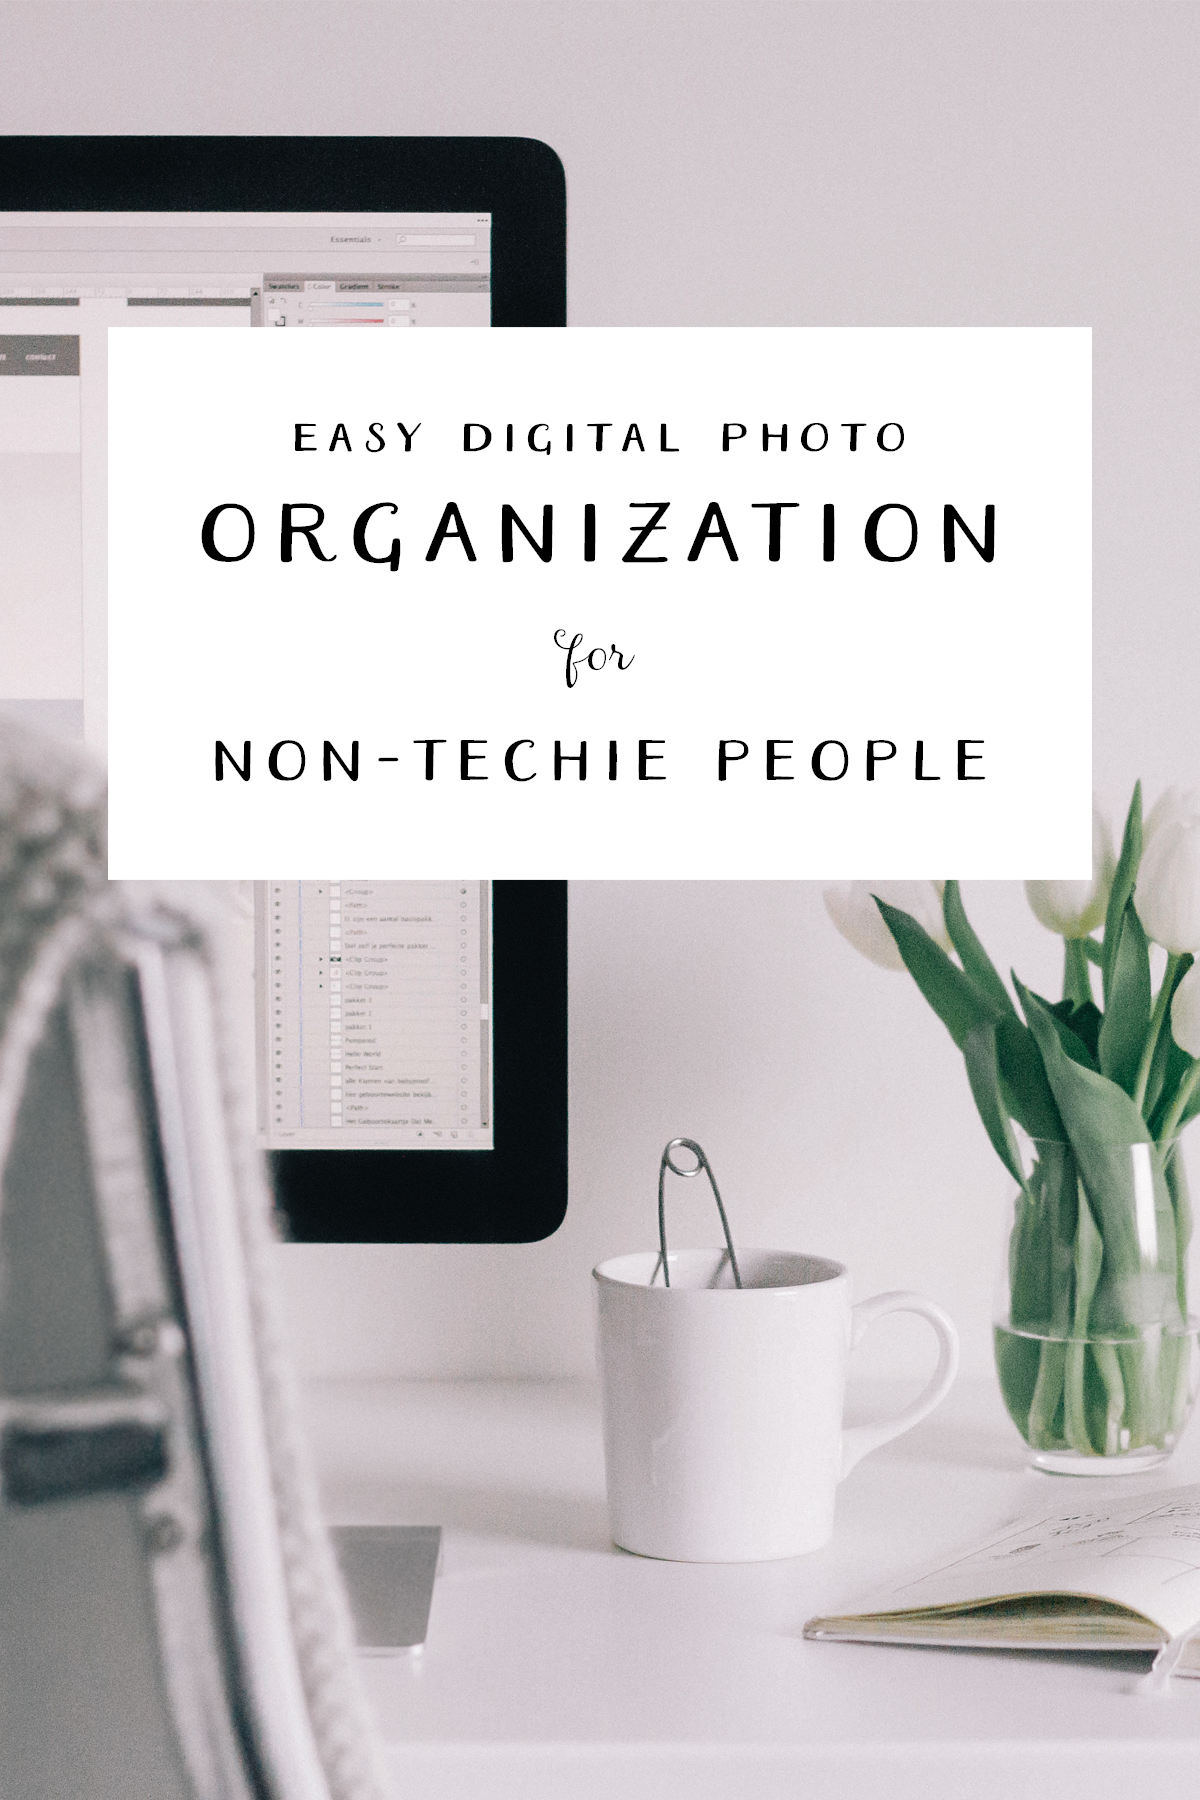 Easy Digital Photo Organization for Non-Techie People